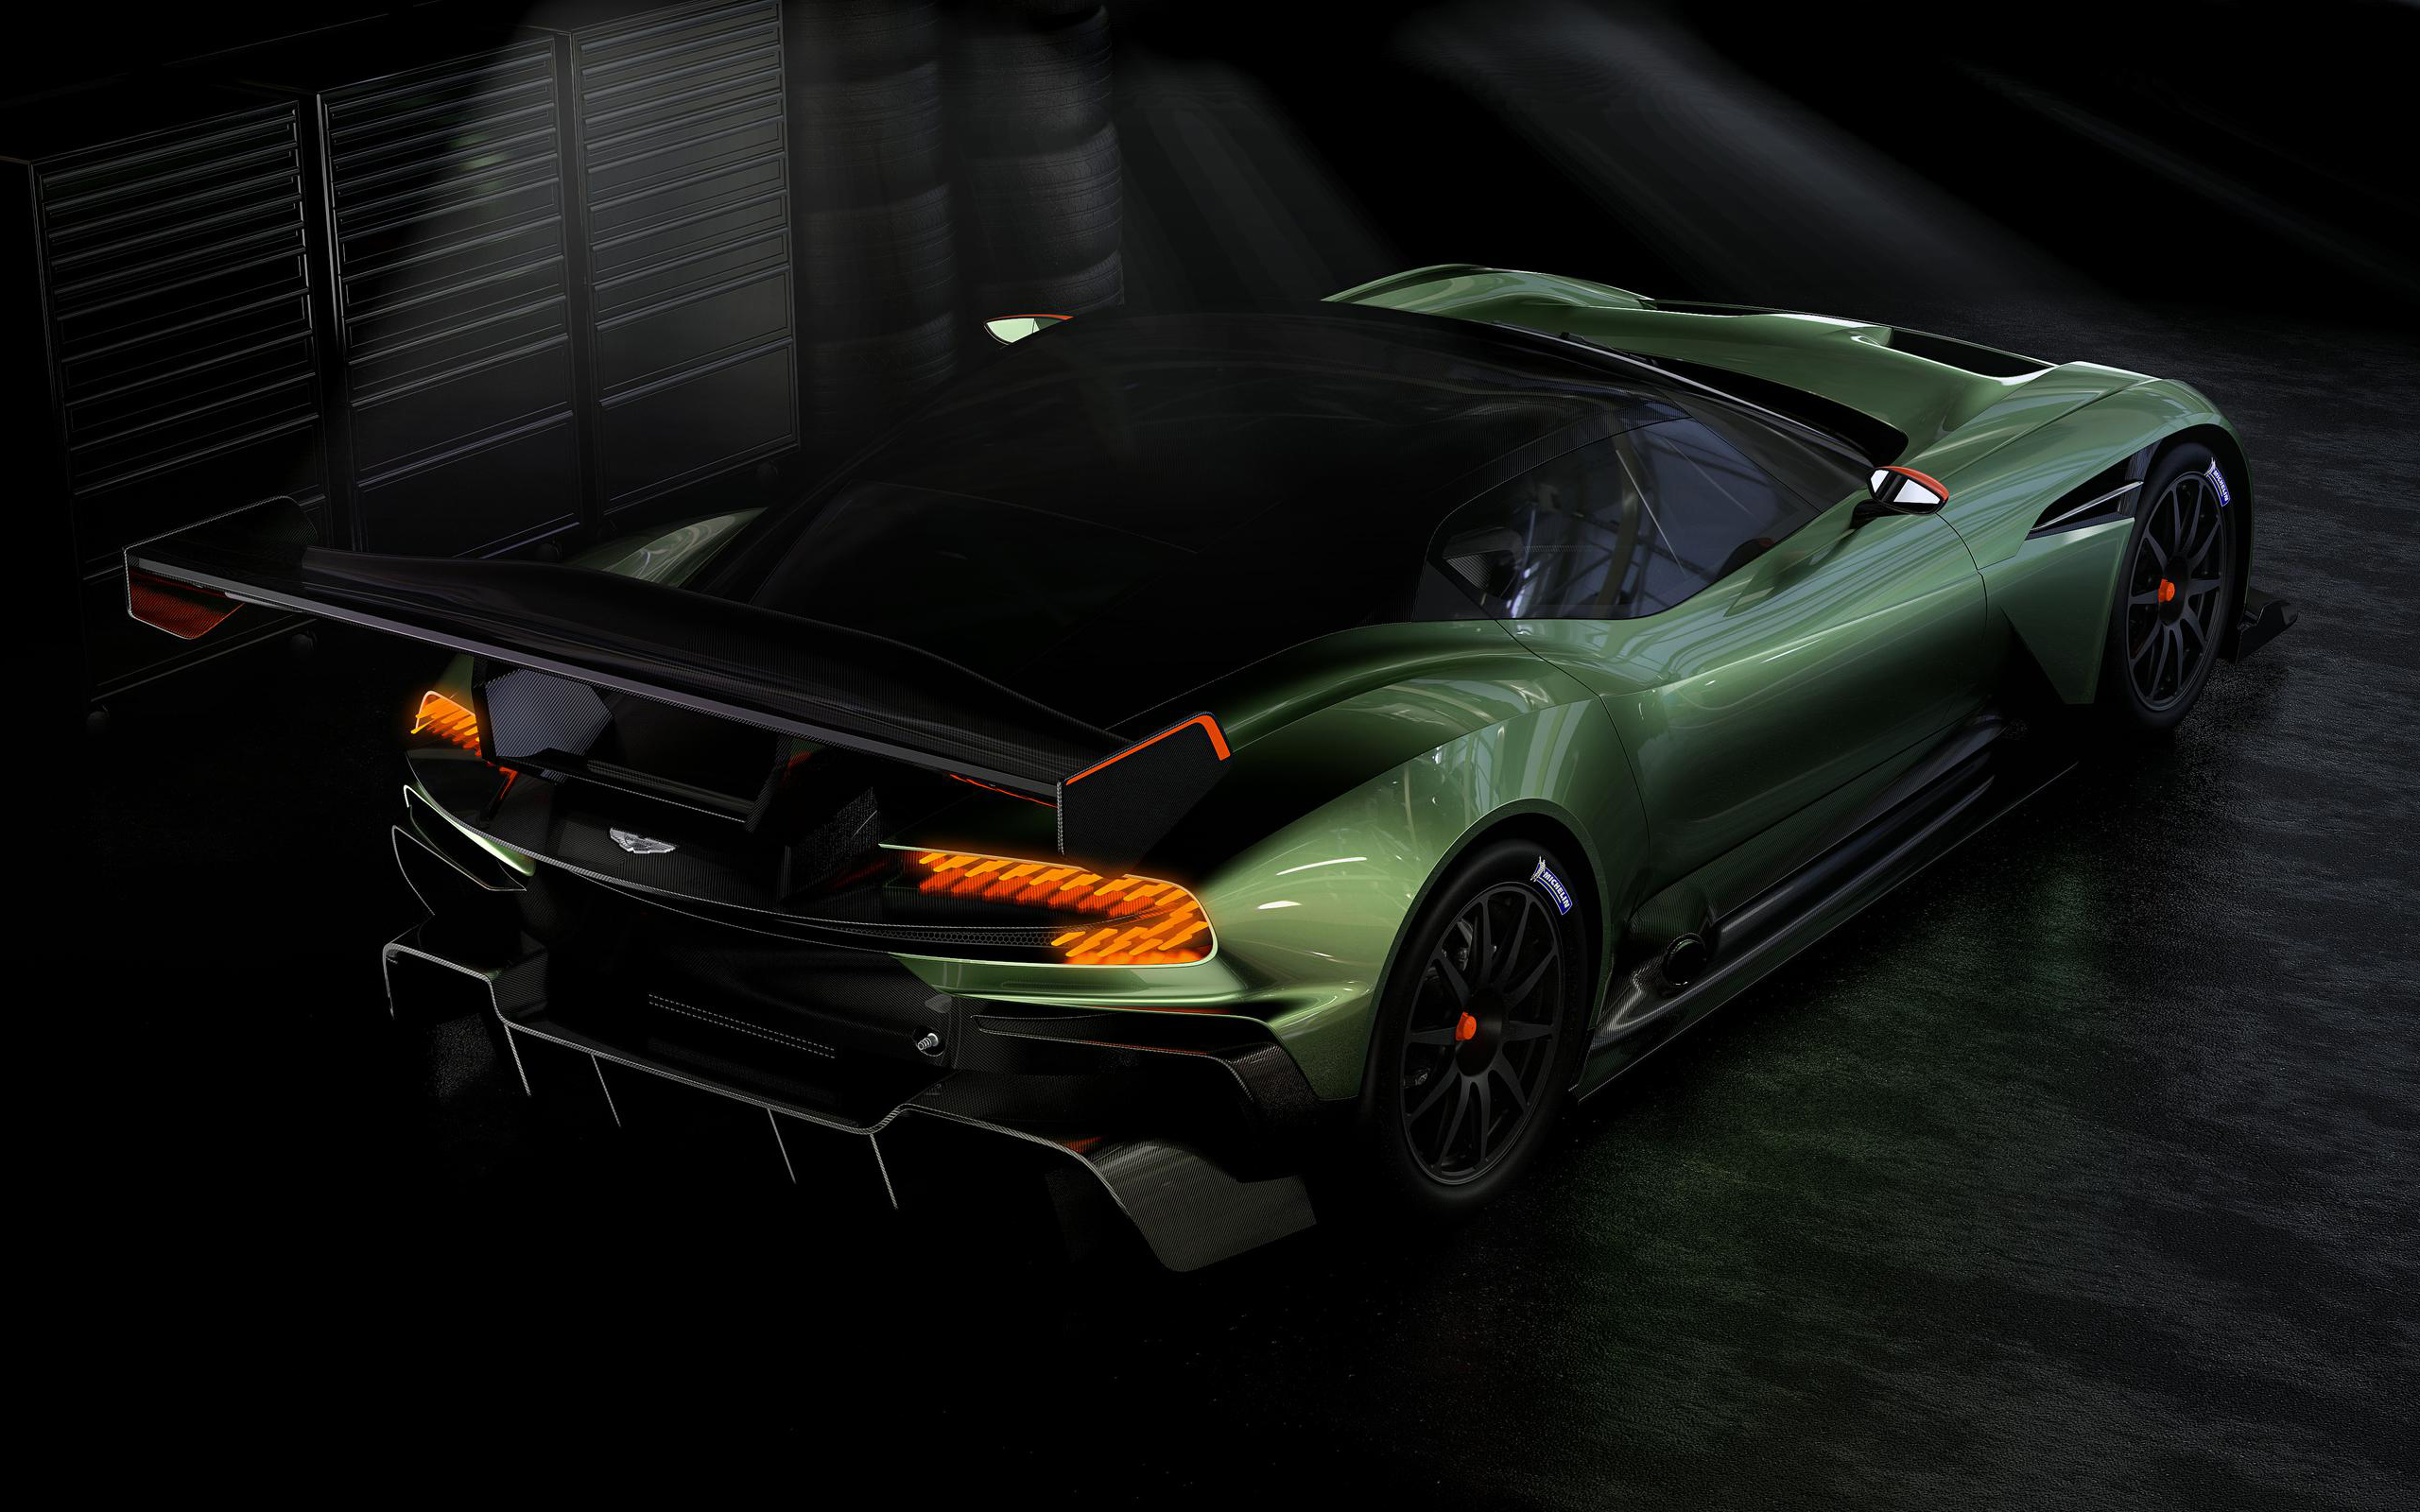 Aston Martin Vulcan 2015 HD Wallpaper 2560x1600